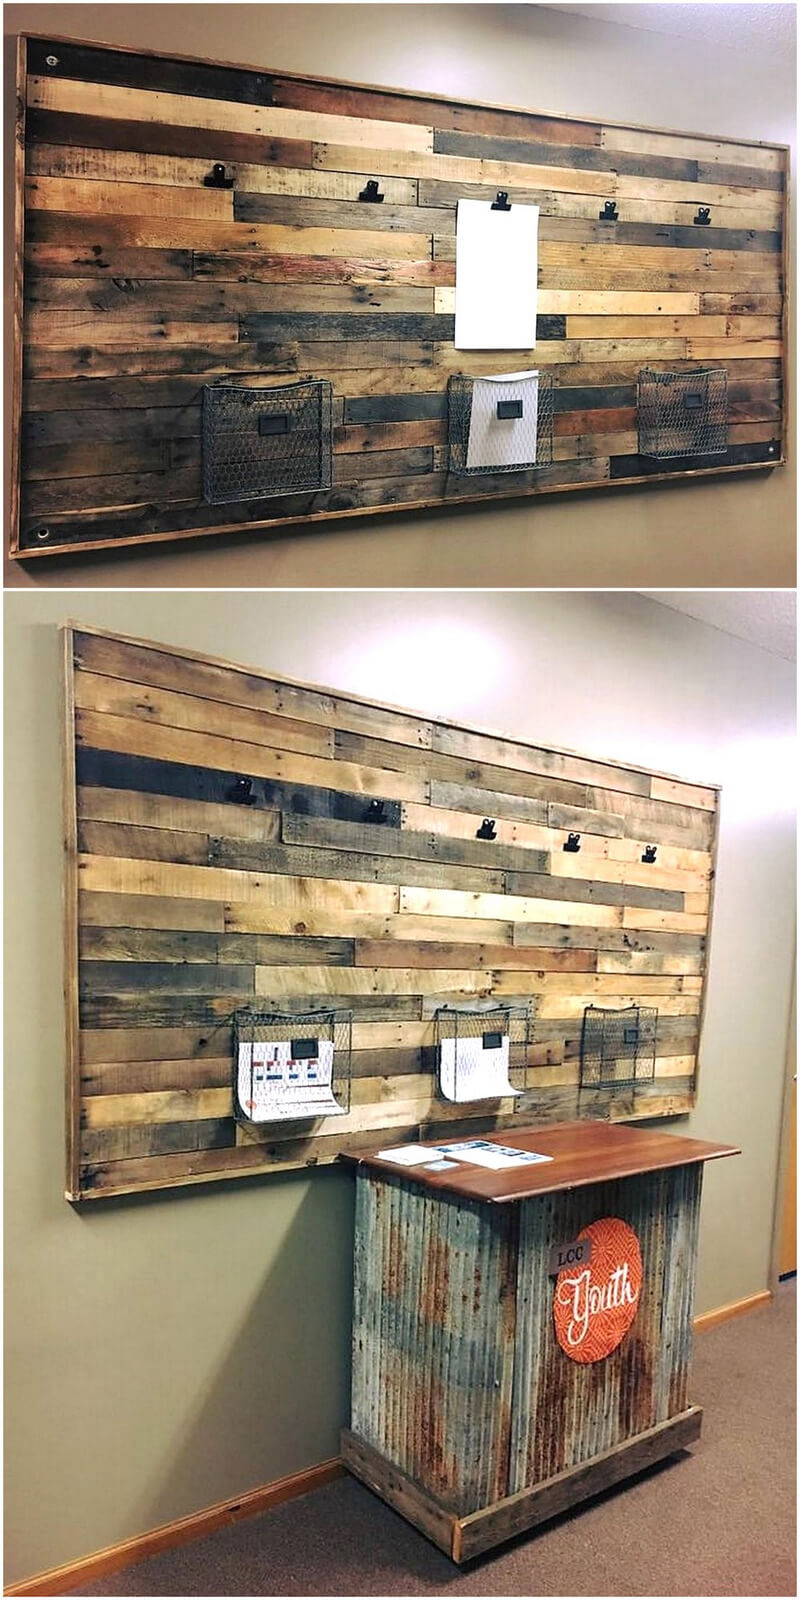 pallets wood newsletter, notice display wall rack